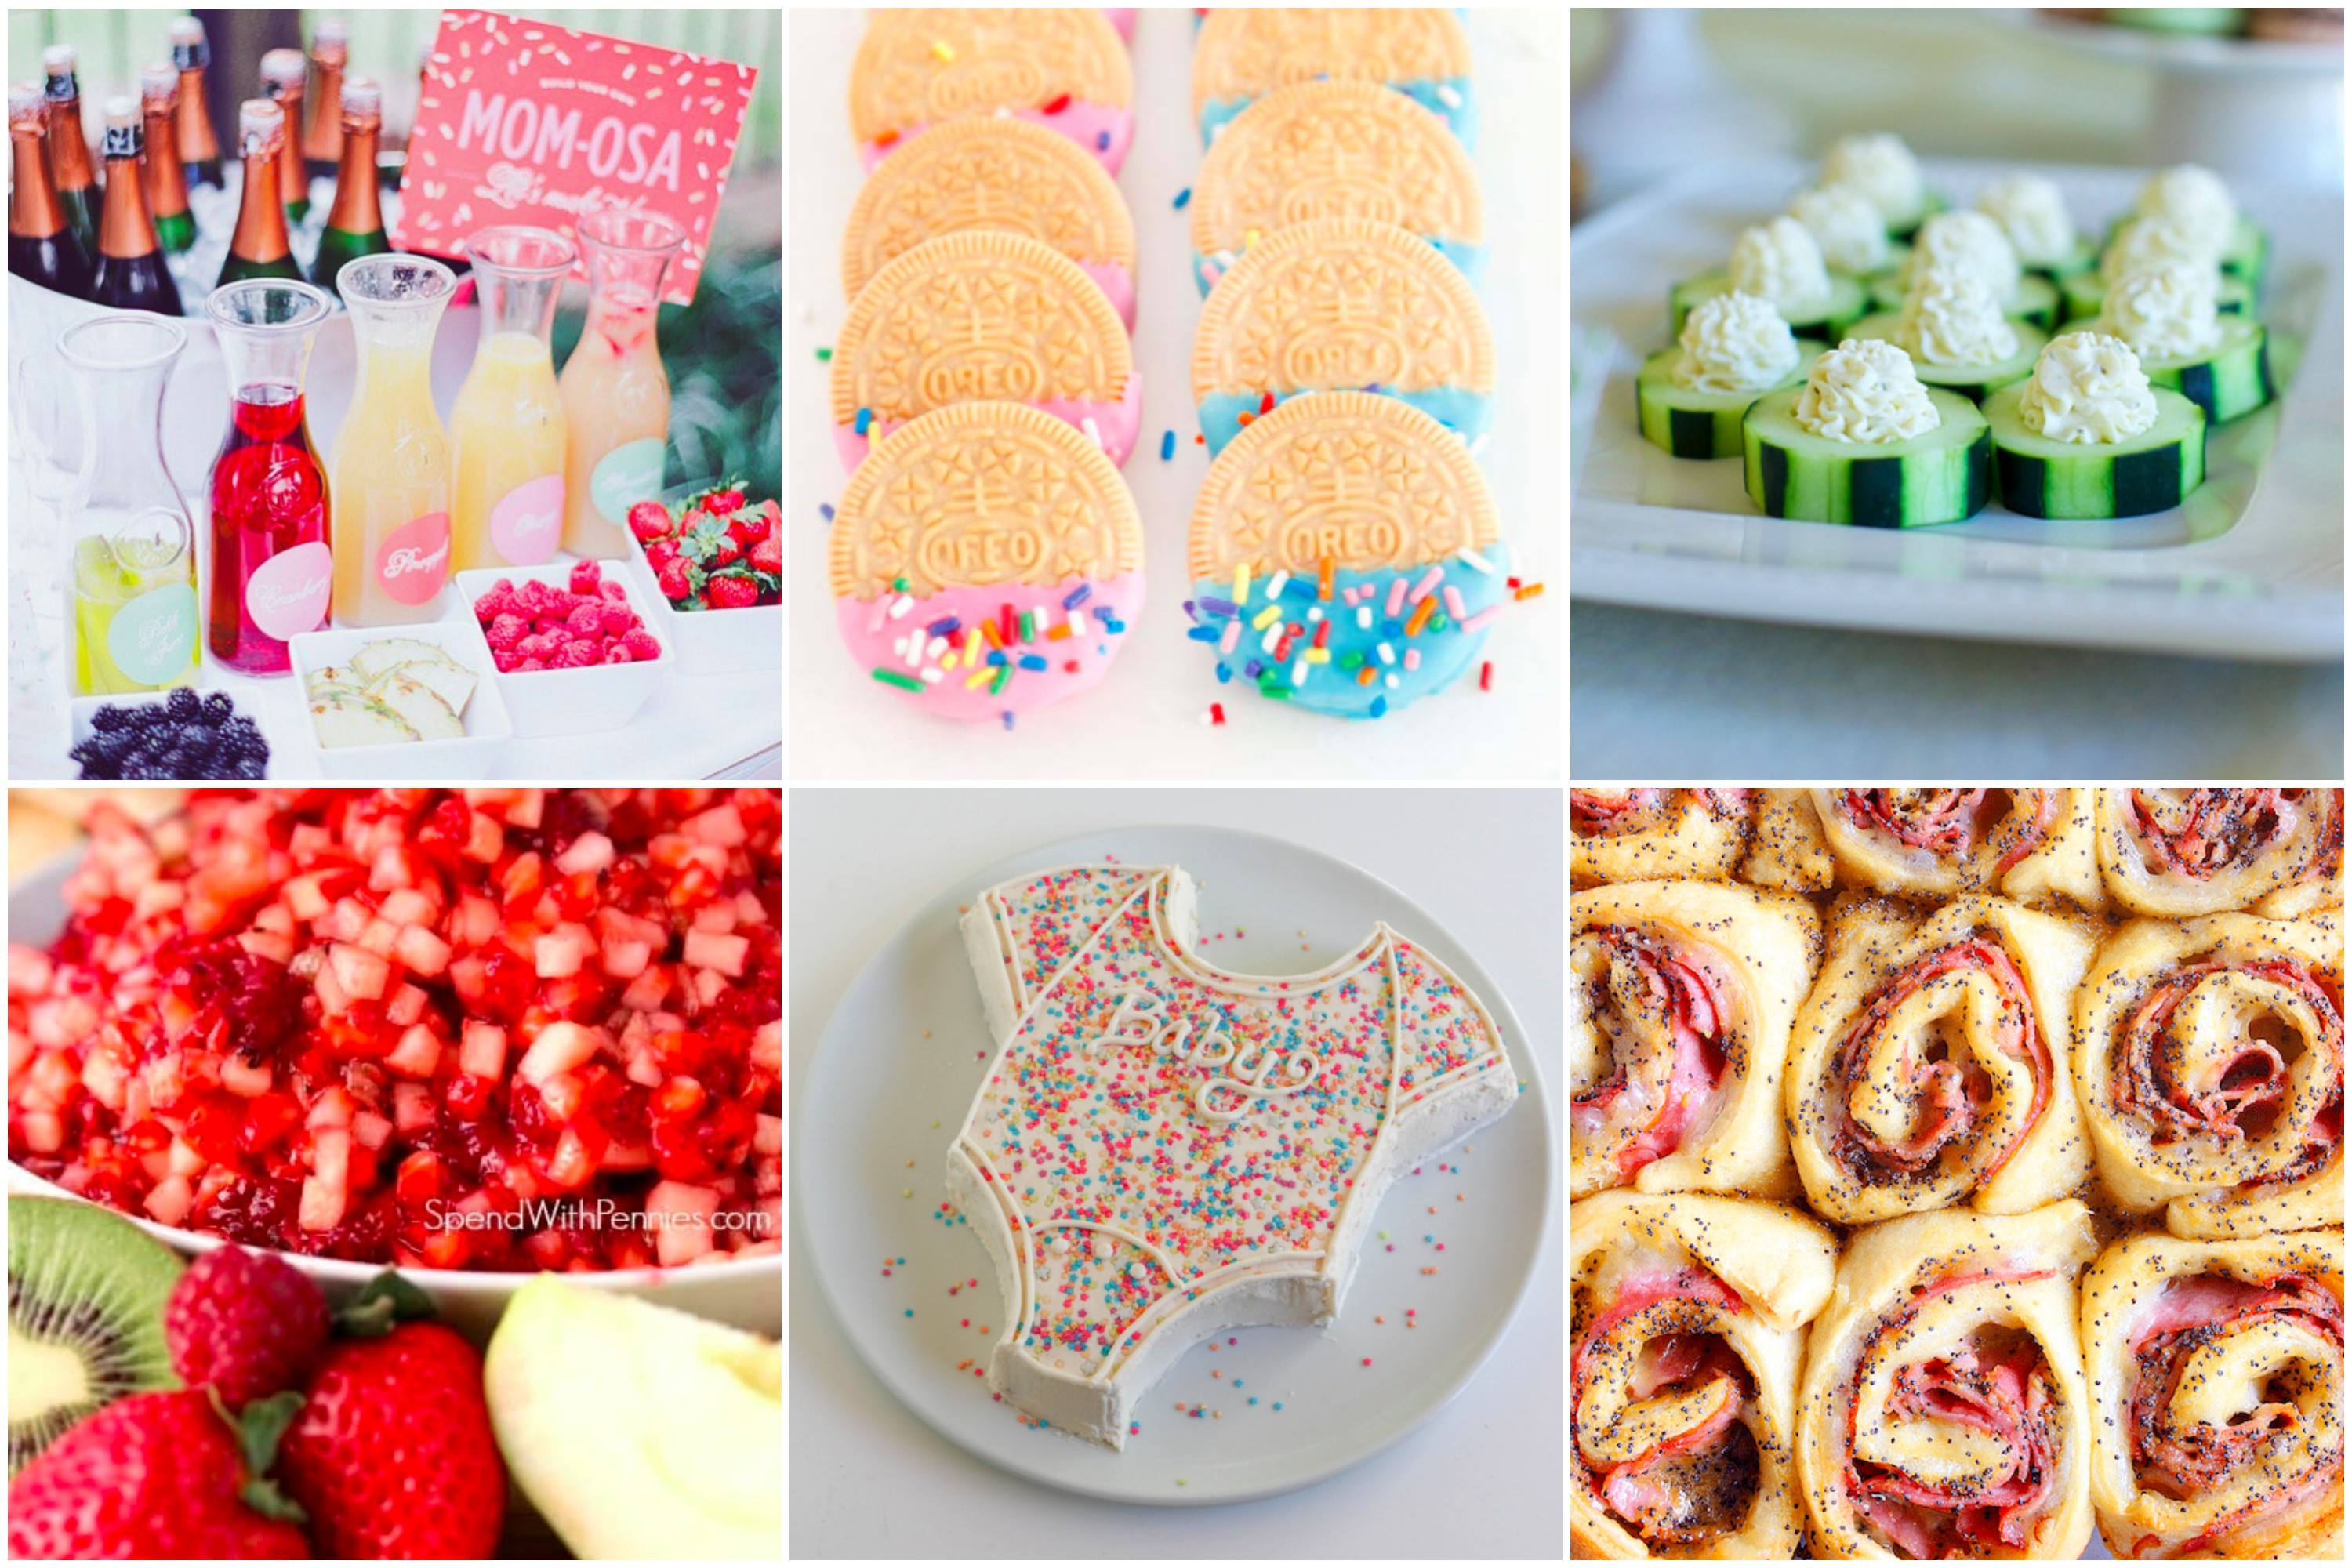 Baby Shower Menu Ideas for a DIY Baby shower party. 6 options to fill up the food table with delicious treats!